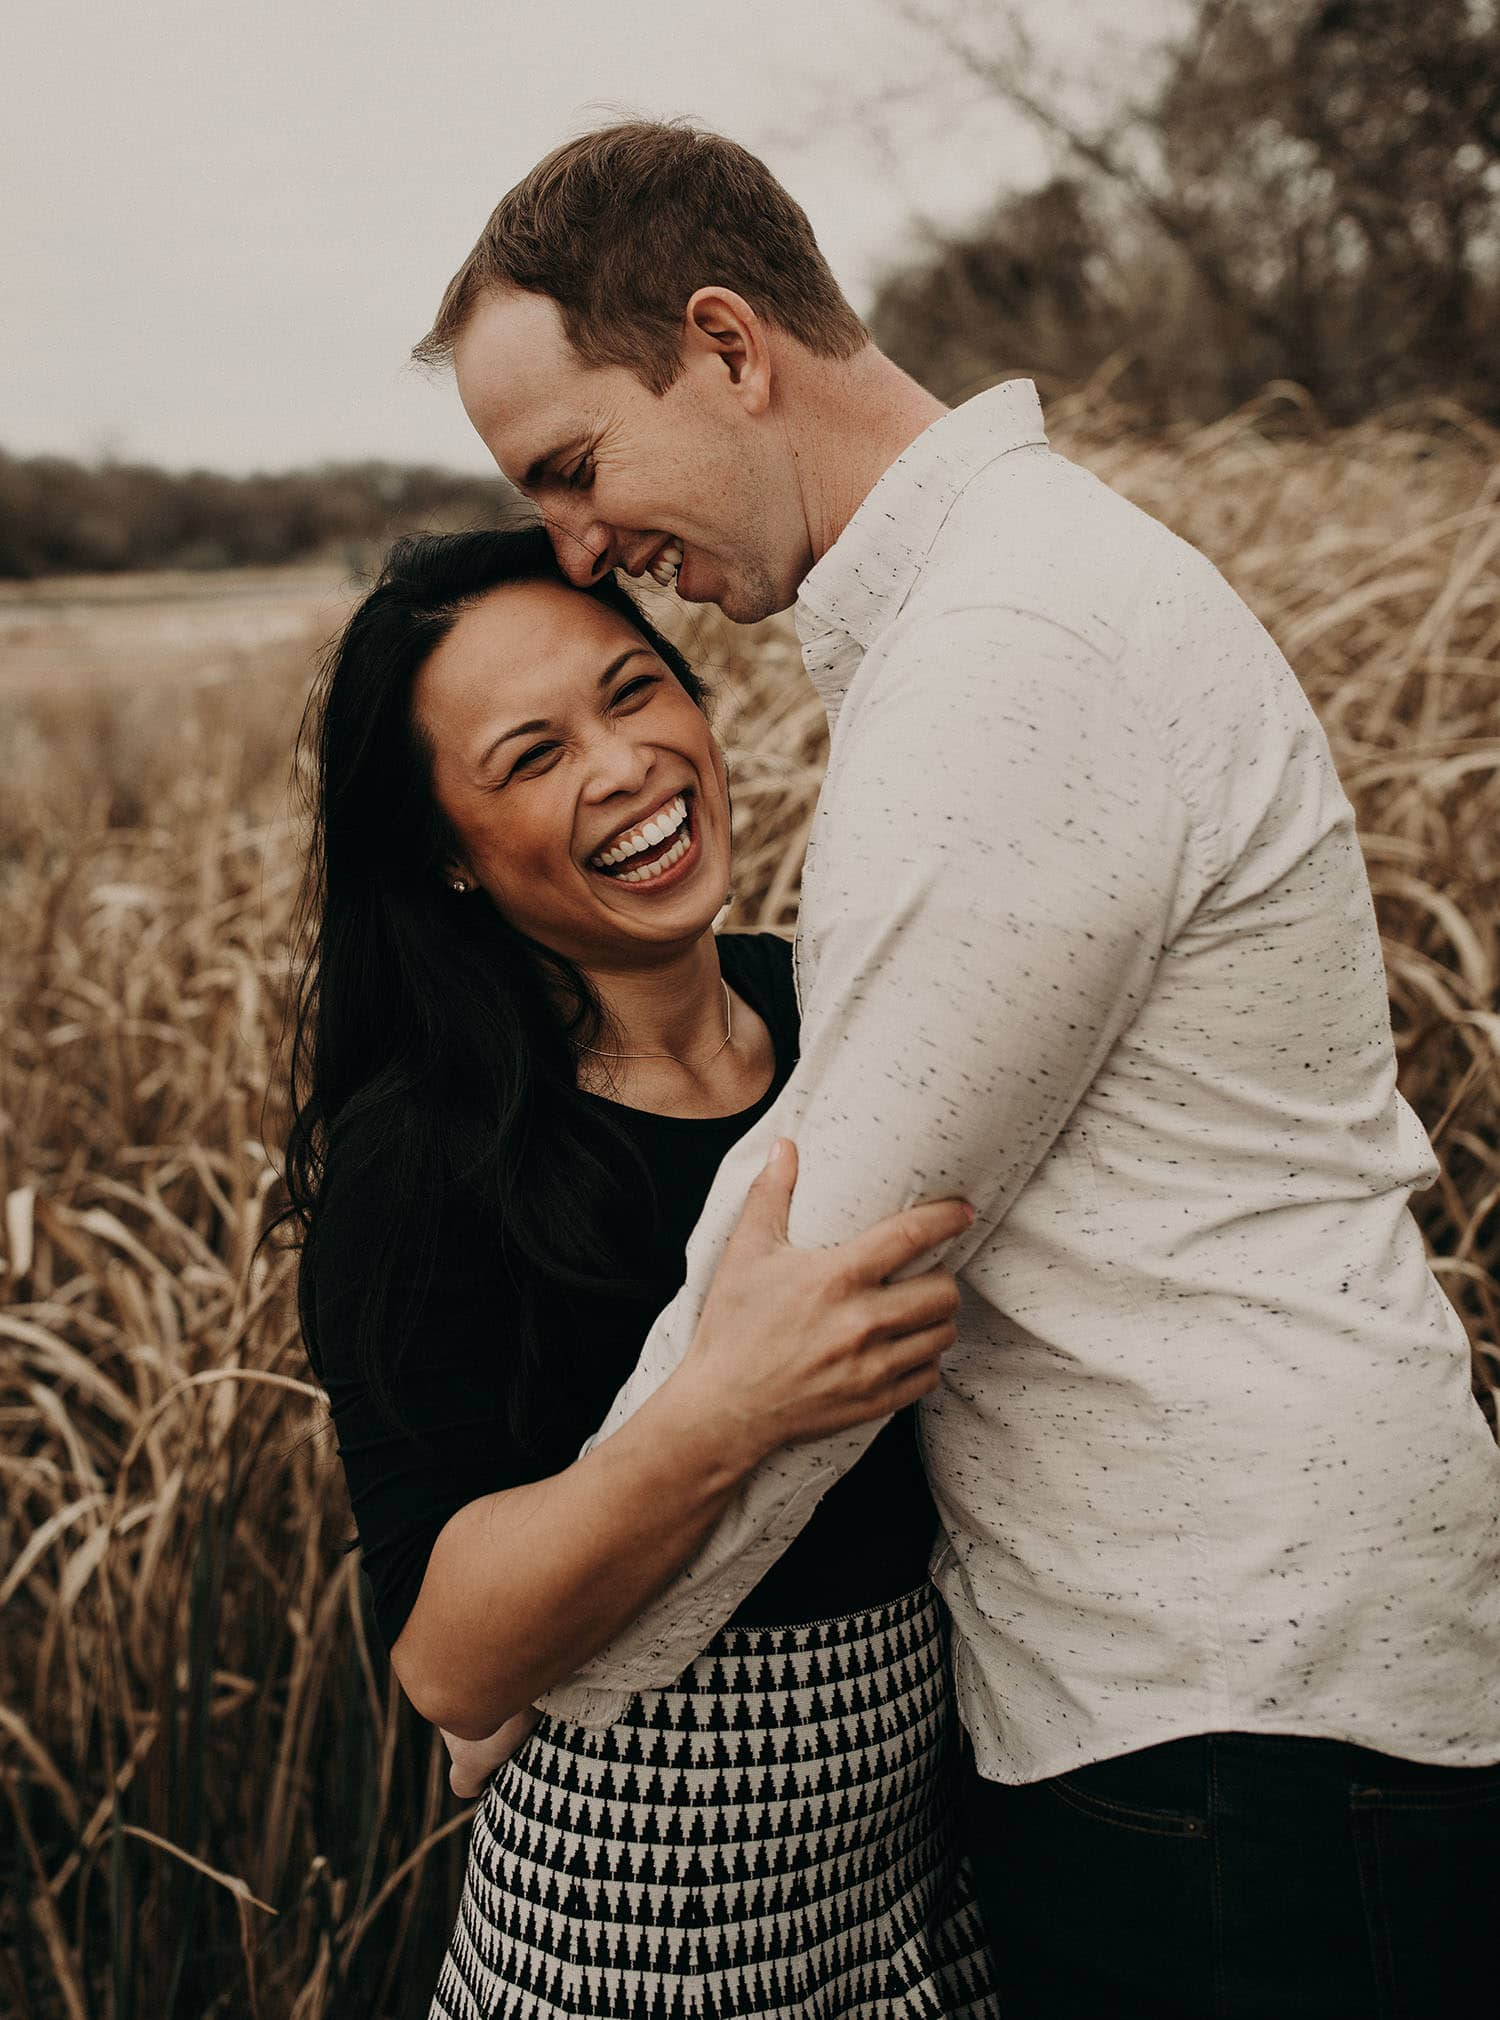 Engagement photo shoot with couple embracing each other as they smile and face each other while in a field of tall grass. Photograph by Austin, Texas wedding photographer Nikk Nguyen.